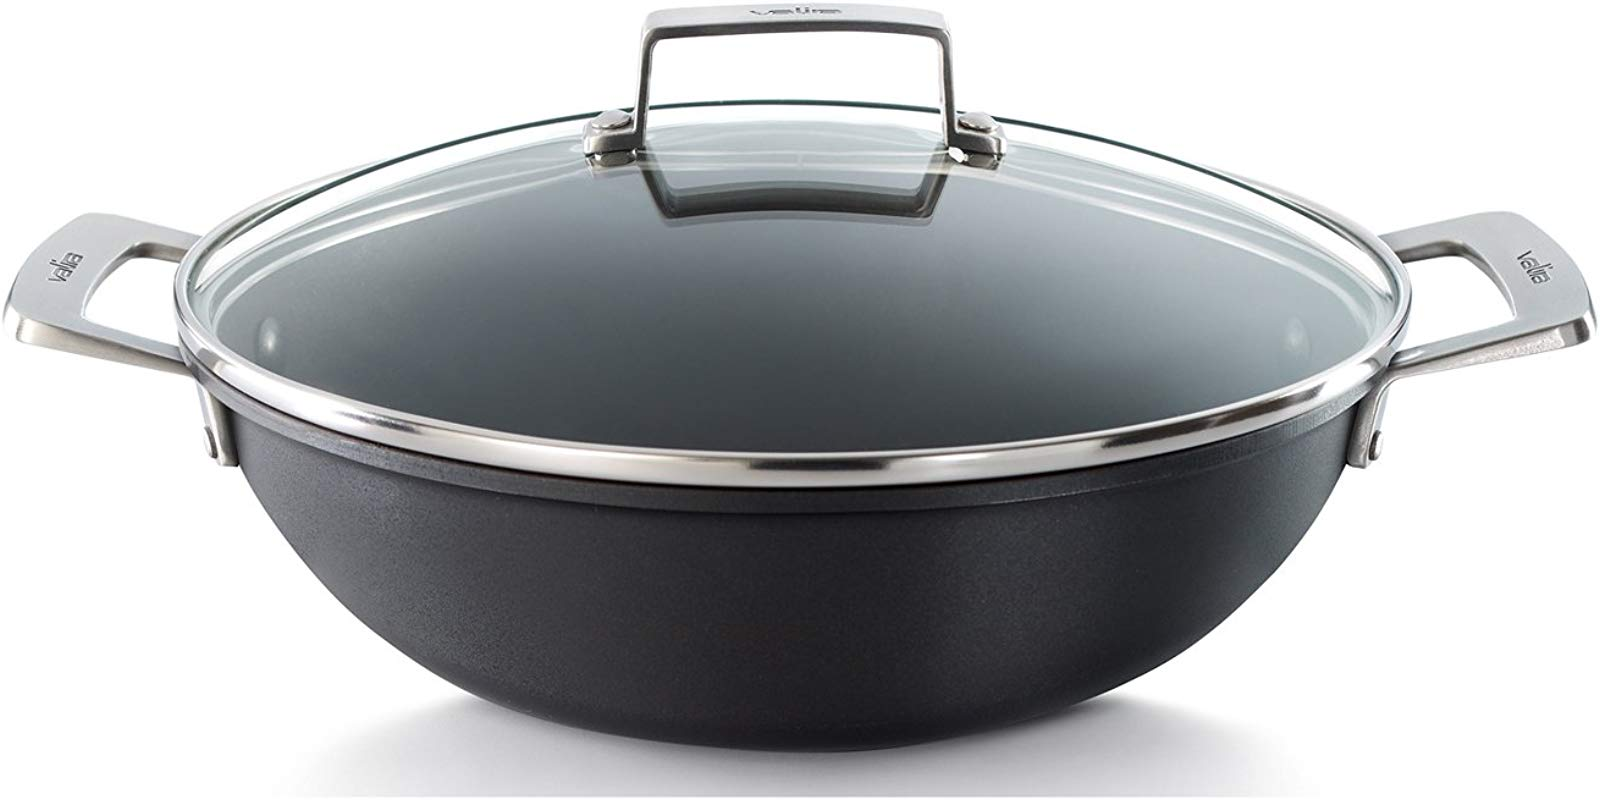 Valira Aire Reinforced Non Stick Scratch Resistant Cast Aluminum Mediterranean Casserole Pan With Glass Lid Induction Ready 3 5 Quart 11 Diameter